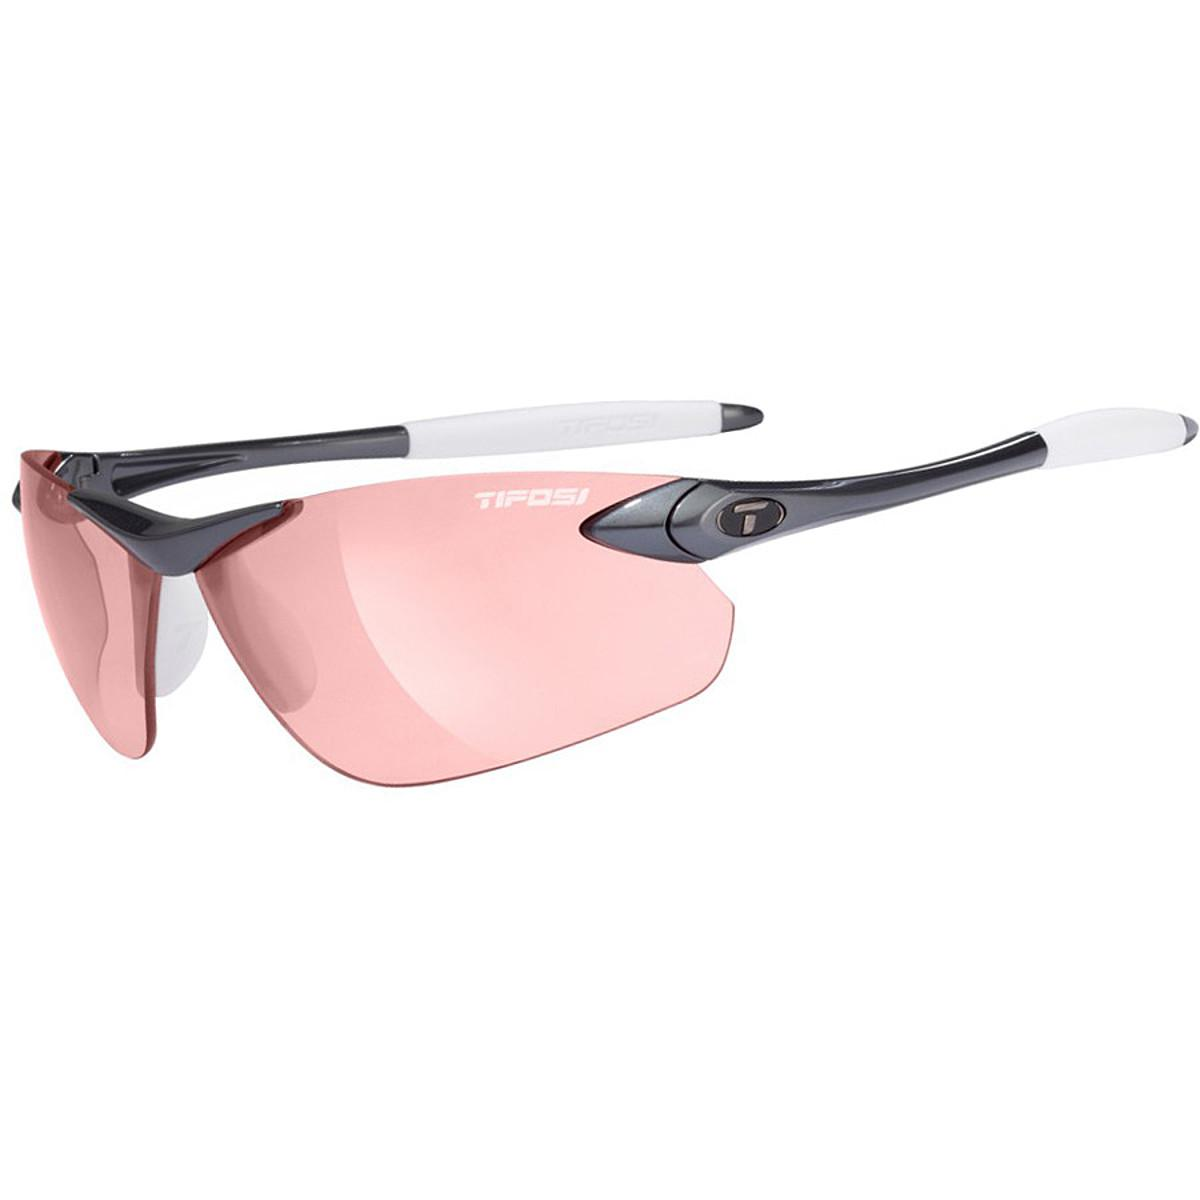 bab7ce5b2b7 Lyst - Tifosi Optics Seek Fc Photochromic Sunglasses in Pink